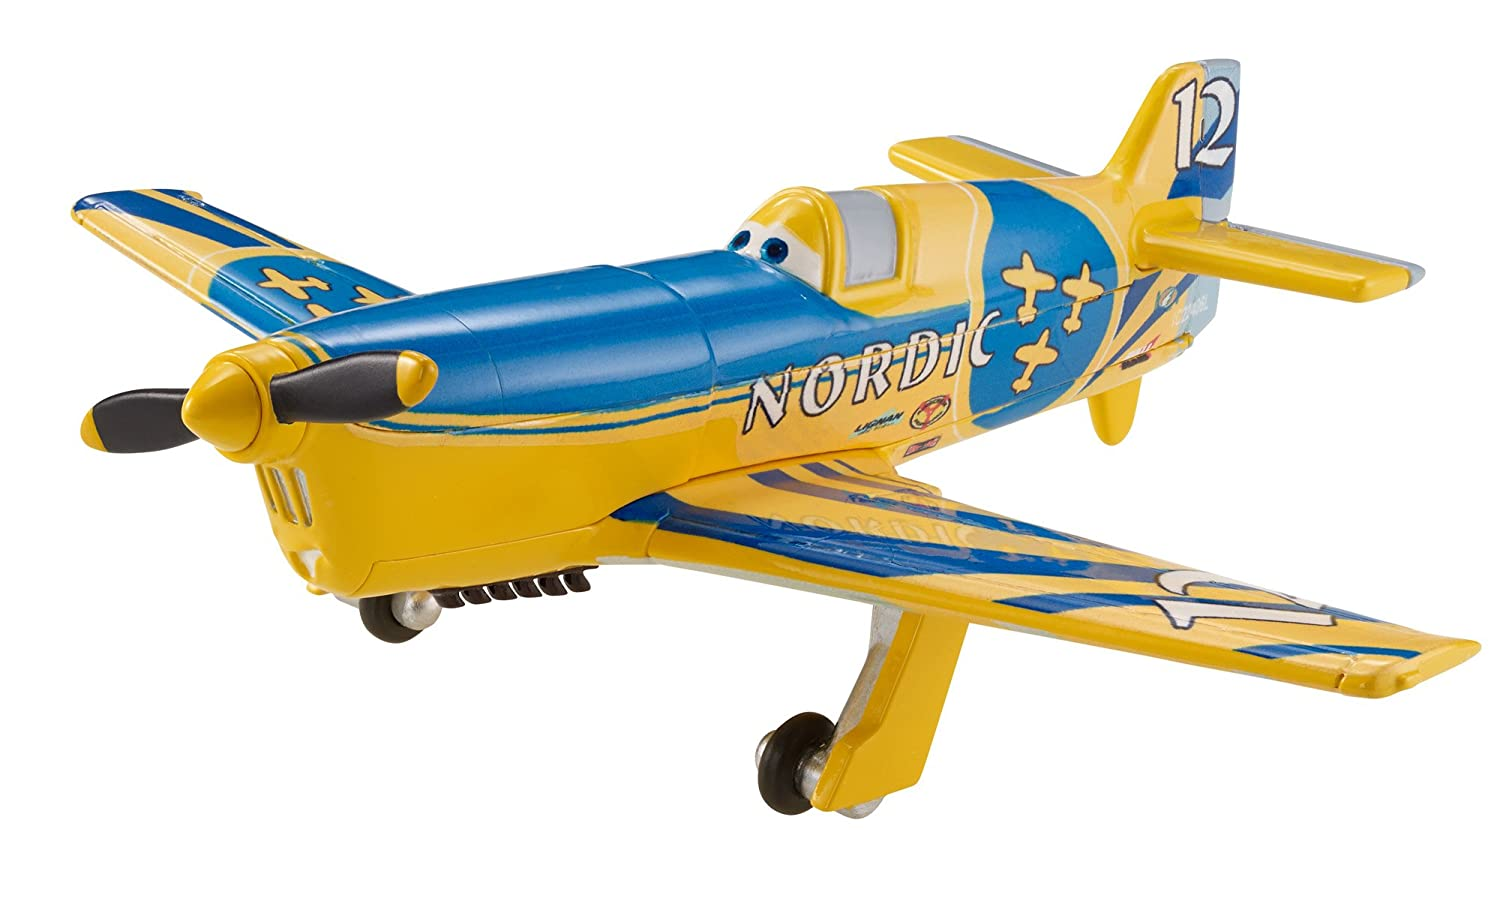 plane dusty toy with 25 Bogen Set Monster High 12er Stickerbogen Sticker Mitgebsel on Dusty Crophopper together with Screened Out Planes Fire And Rescue as well Watch further R New Movies 245 Disney Planes 286 Disney Planes Dusty 2048 X 2048 3920 as well In Planes Males Soar Females Get Grounded.